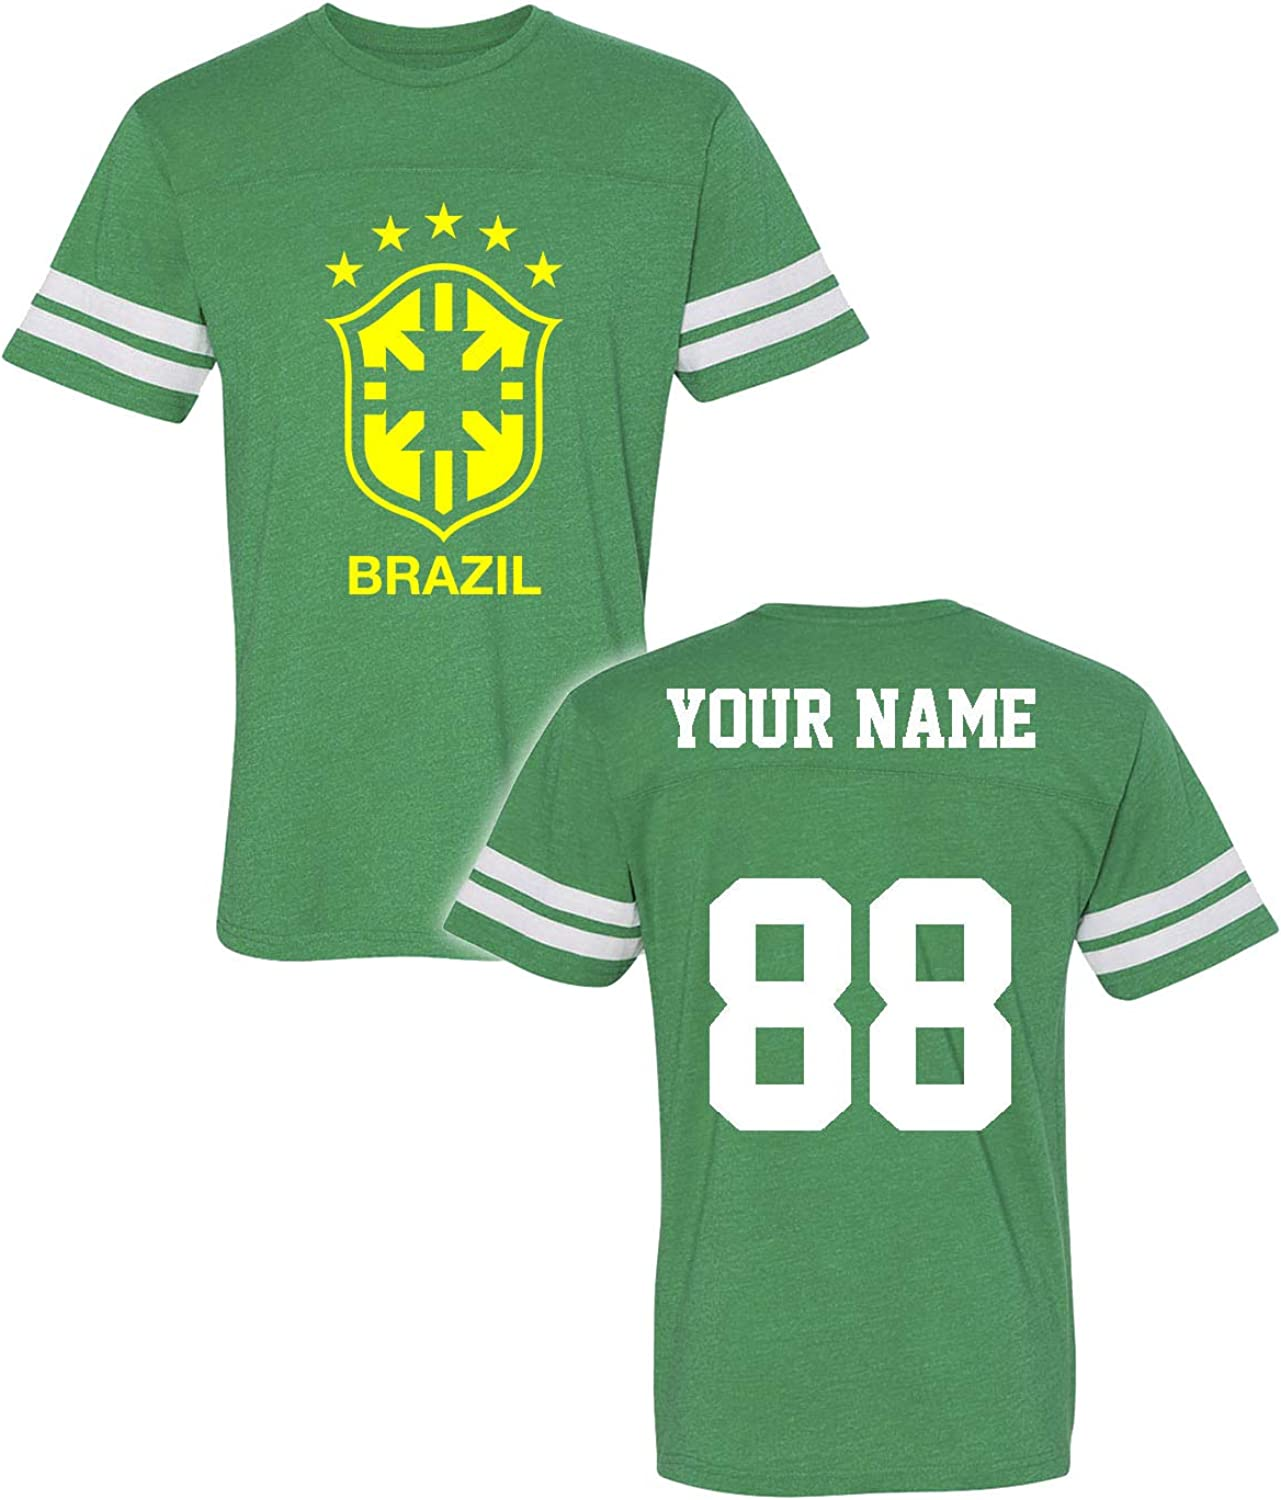 Custom Soccer Jerseys for National Teams - Personalized Team Uniforms & Outfits